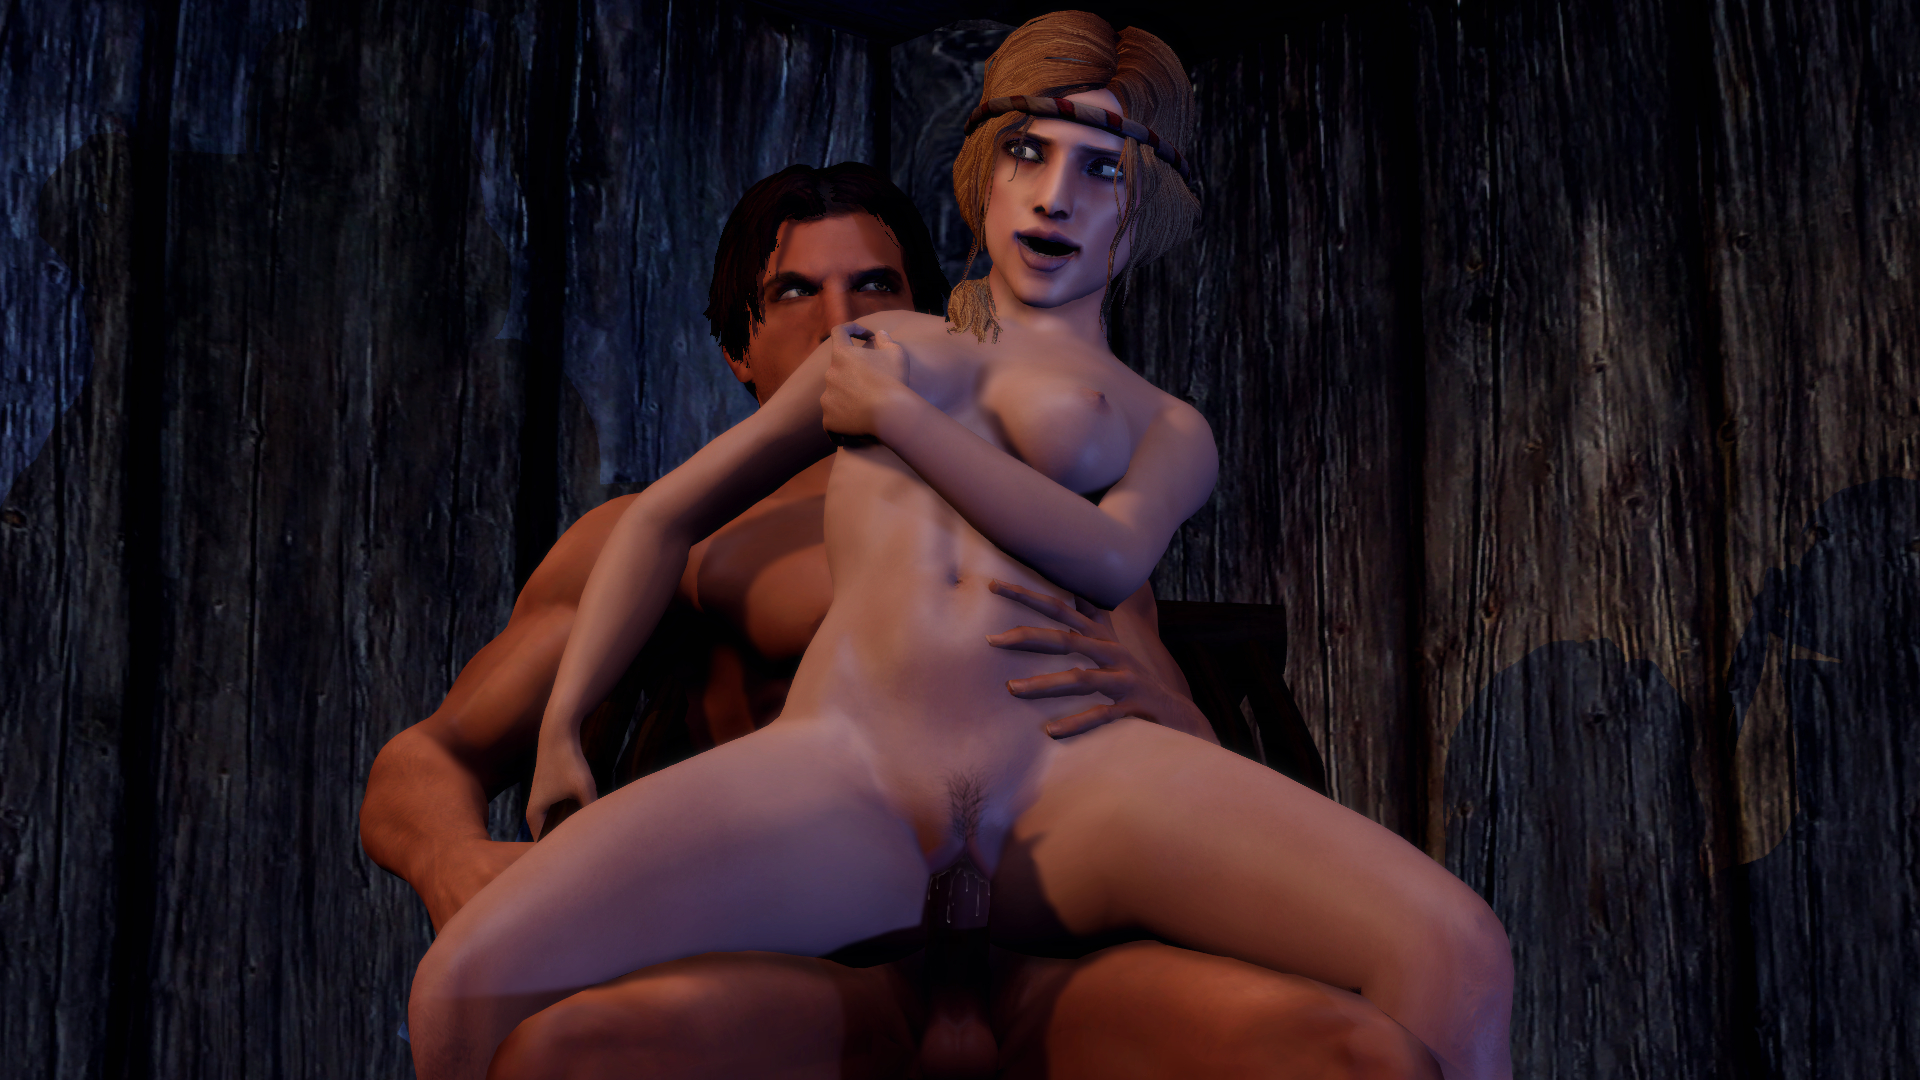 Assassin's creed sex pics erotic video